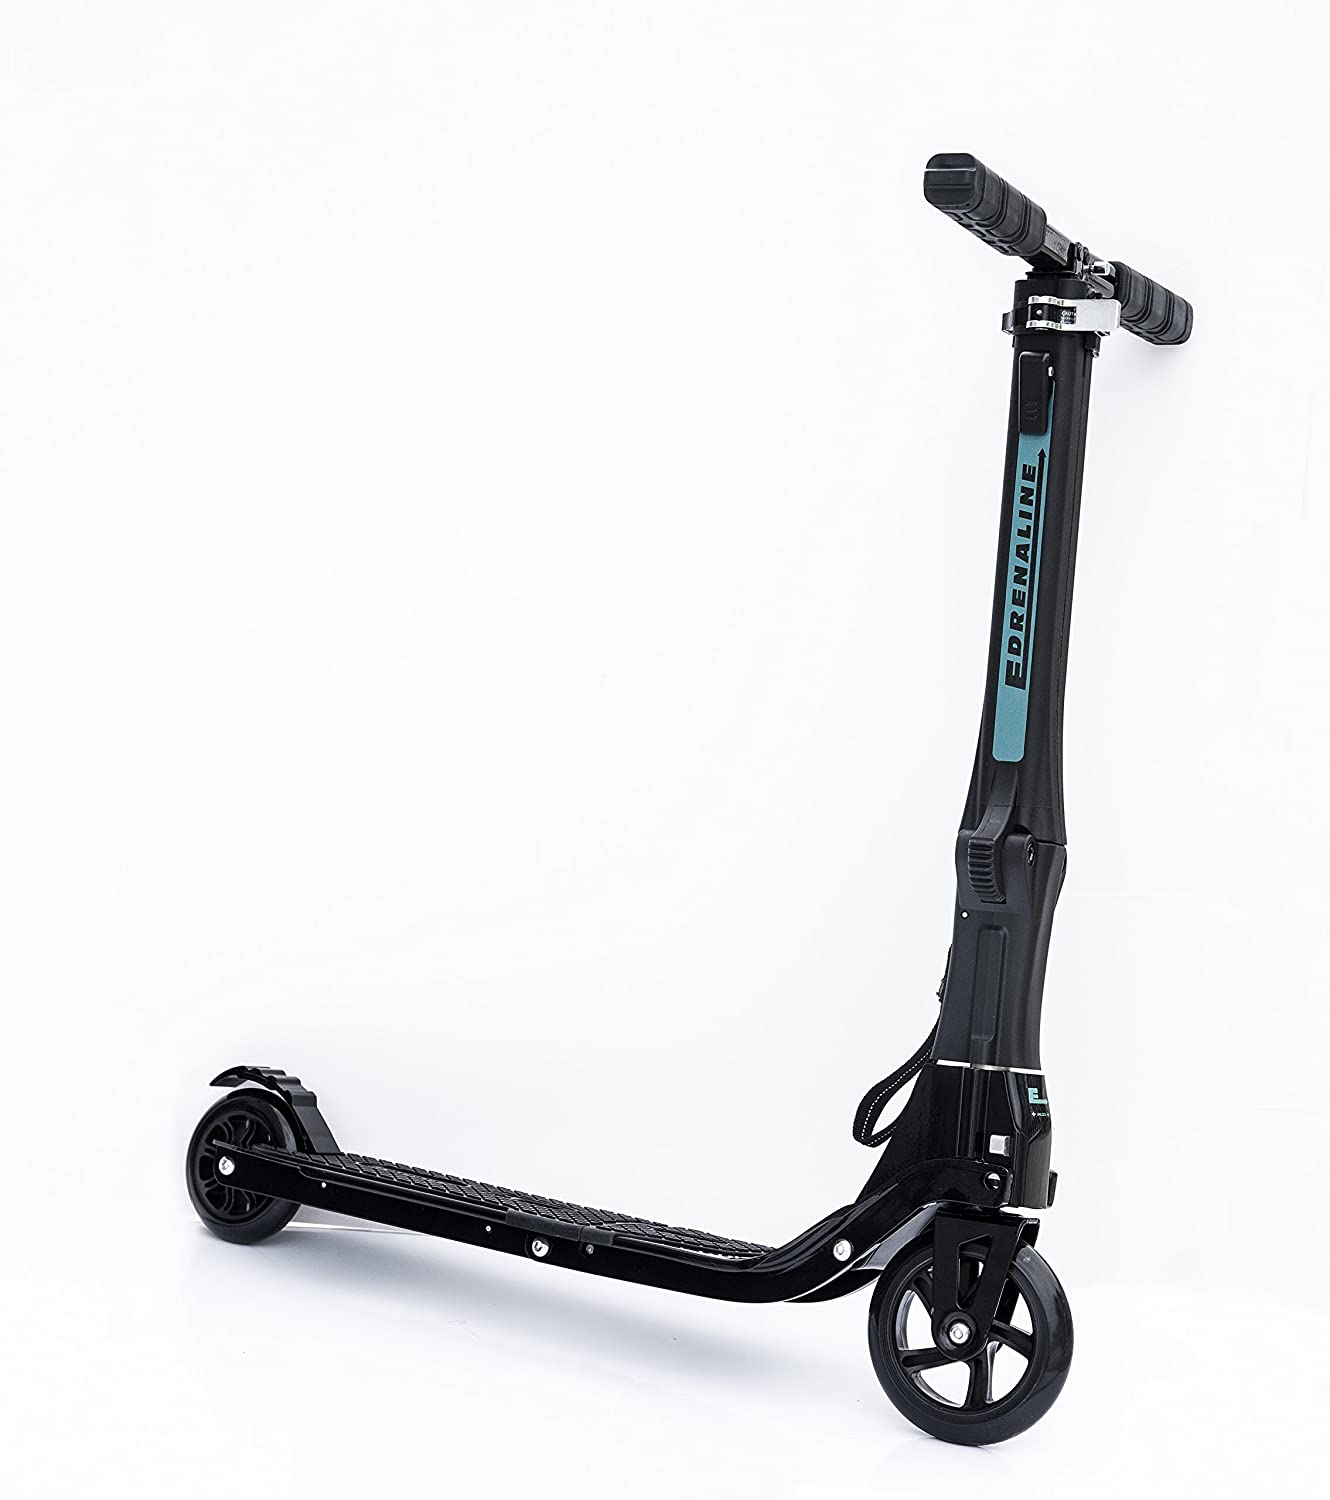 Edrenaline Foldable Kick Scooter with Black Carry Bag